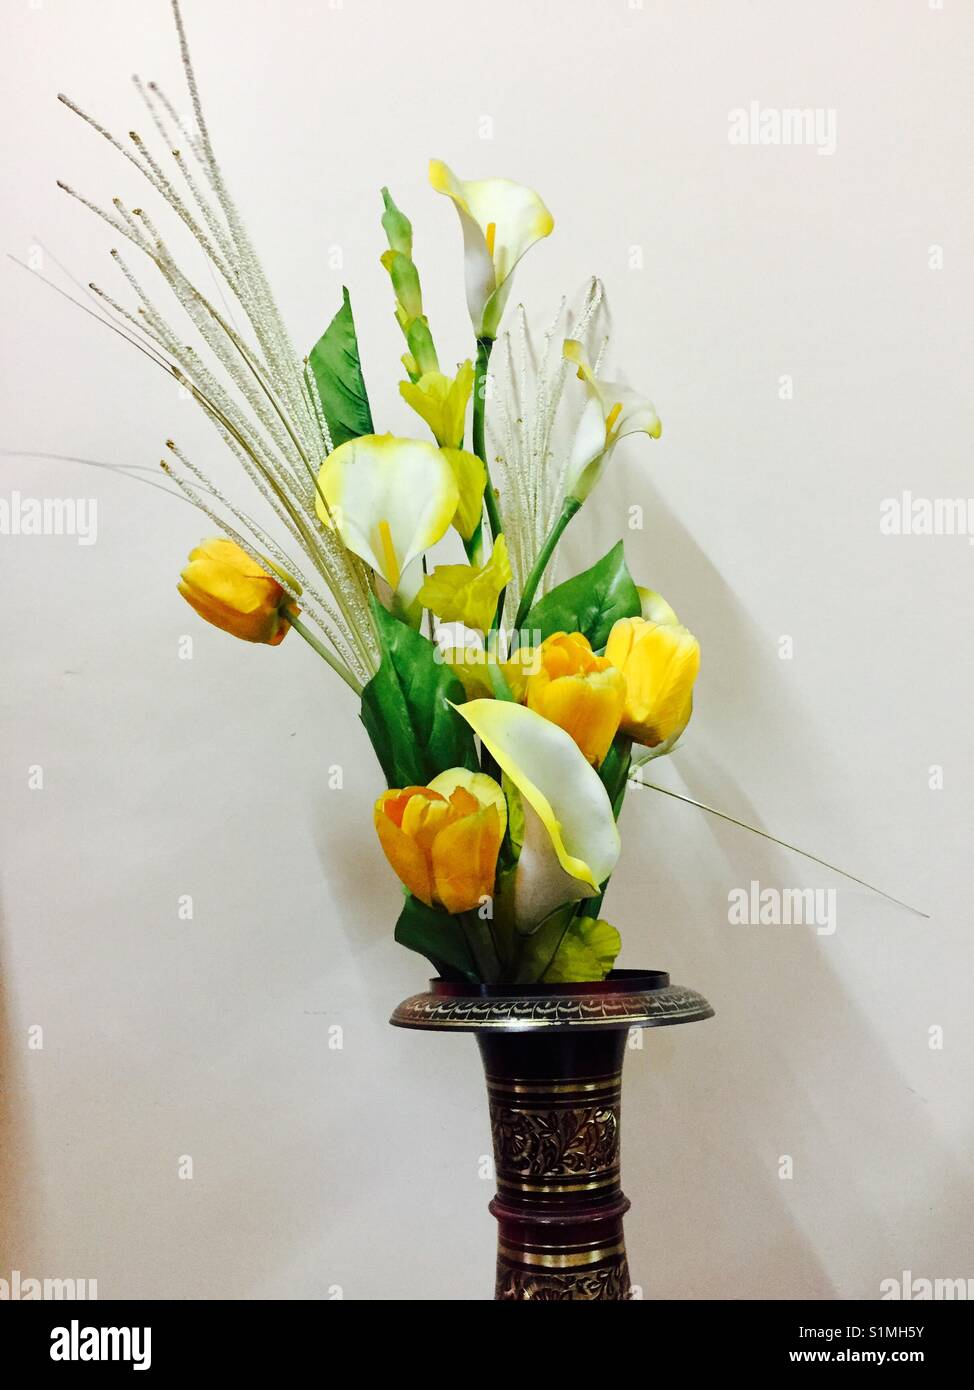 Beautiful flower vase for home decor - Stock Image